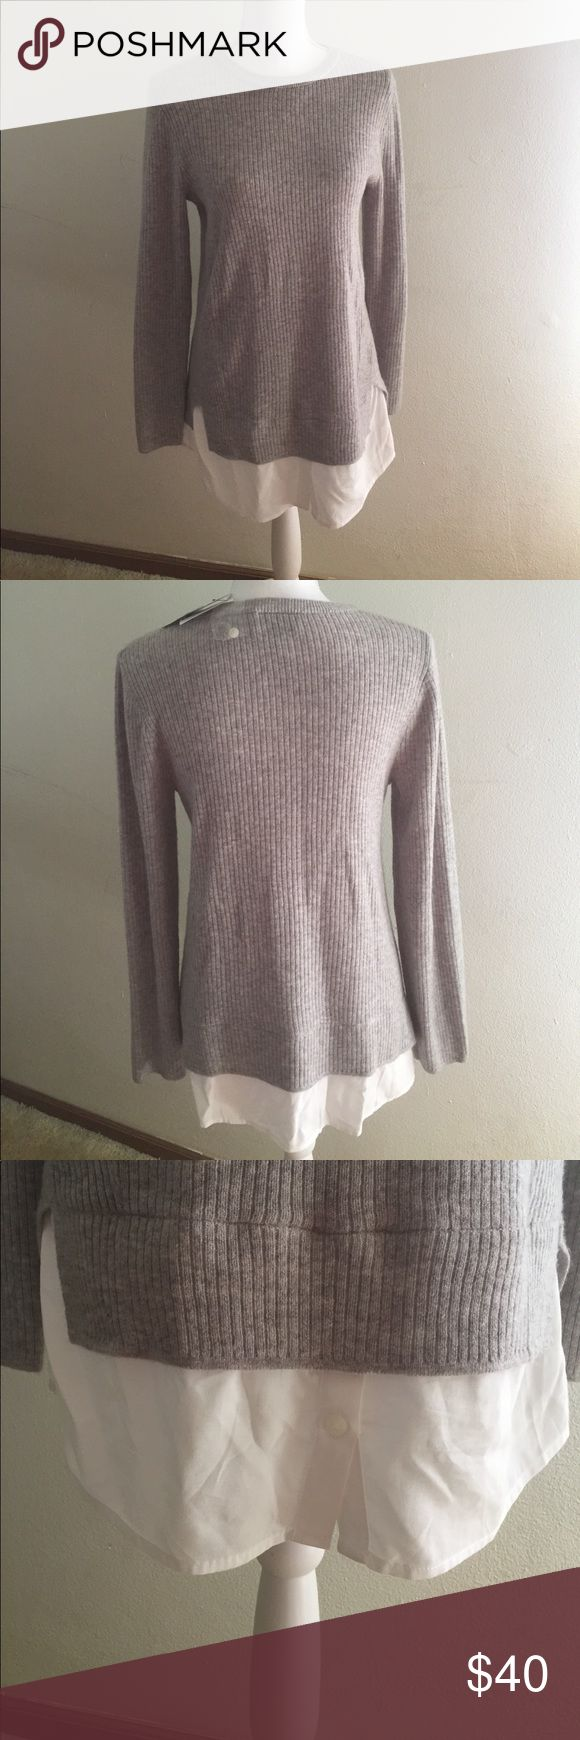 "Topshop maternity jumper marked gray Sz 6 Very cute Topshop maternity jumper with faux shirt.         Very stretchy and comfortable!!   18"" armpit to armpit. 30"" shoulder to bottom hem Topshop MATERNITY Sweaters Crew & Scoop Necks"